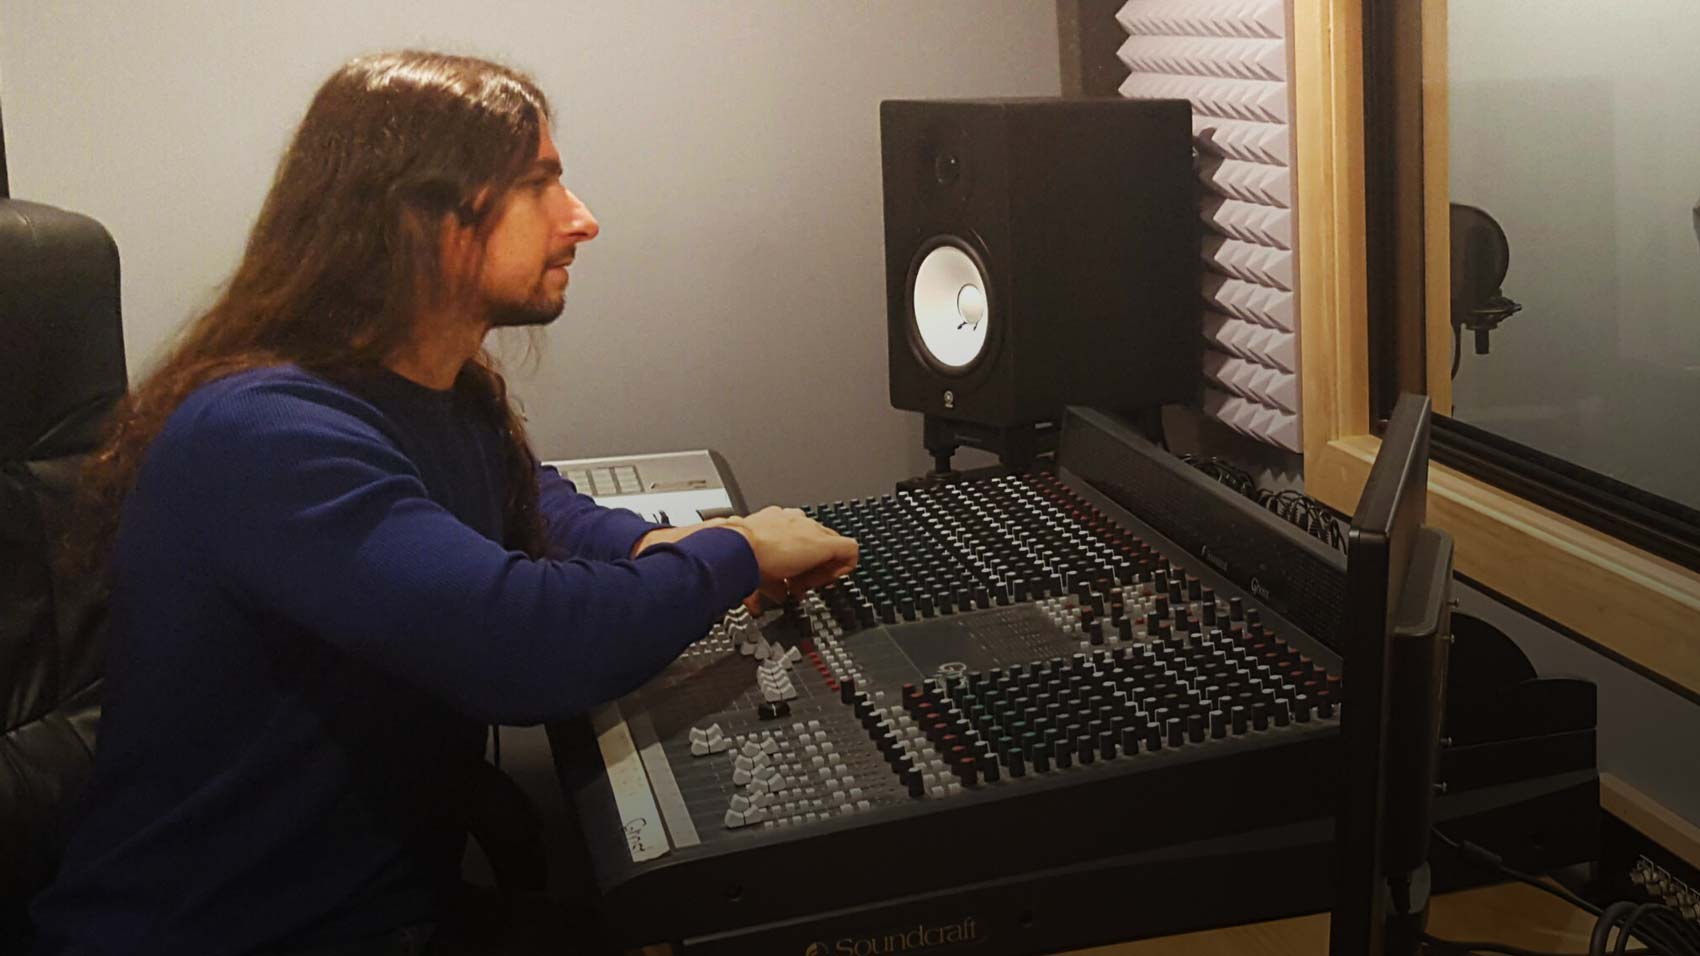 Mike-at-mixing-board-1700x957.jpg